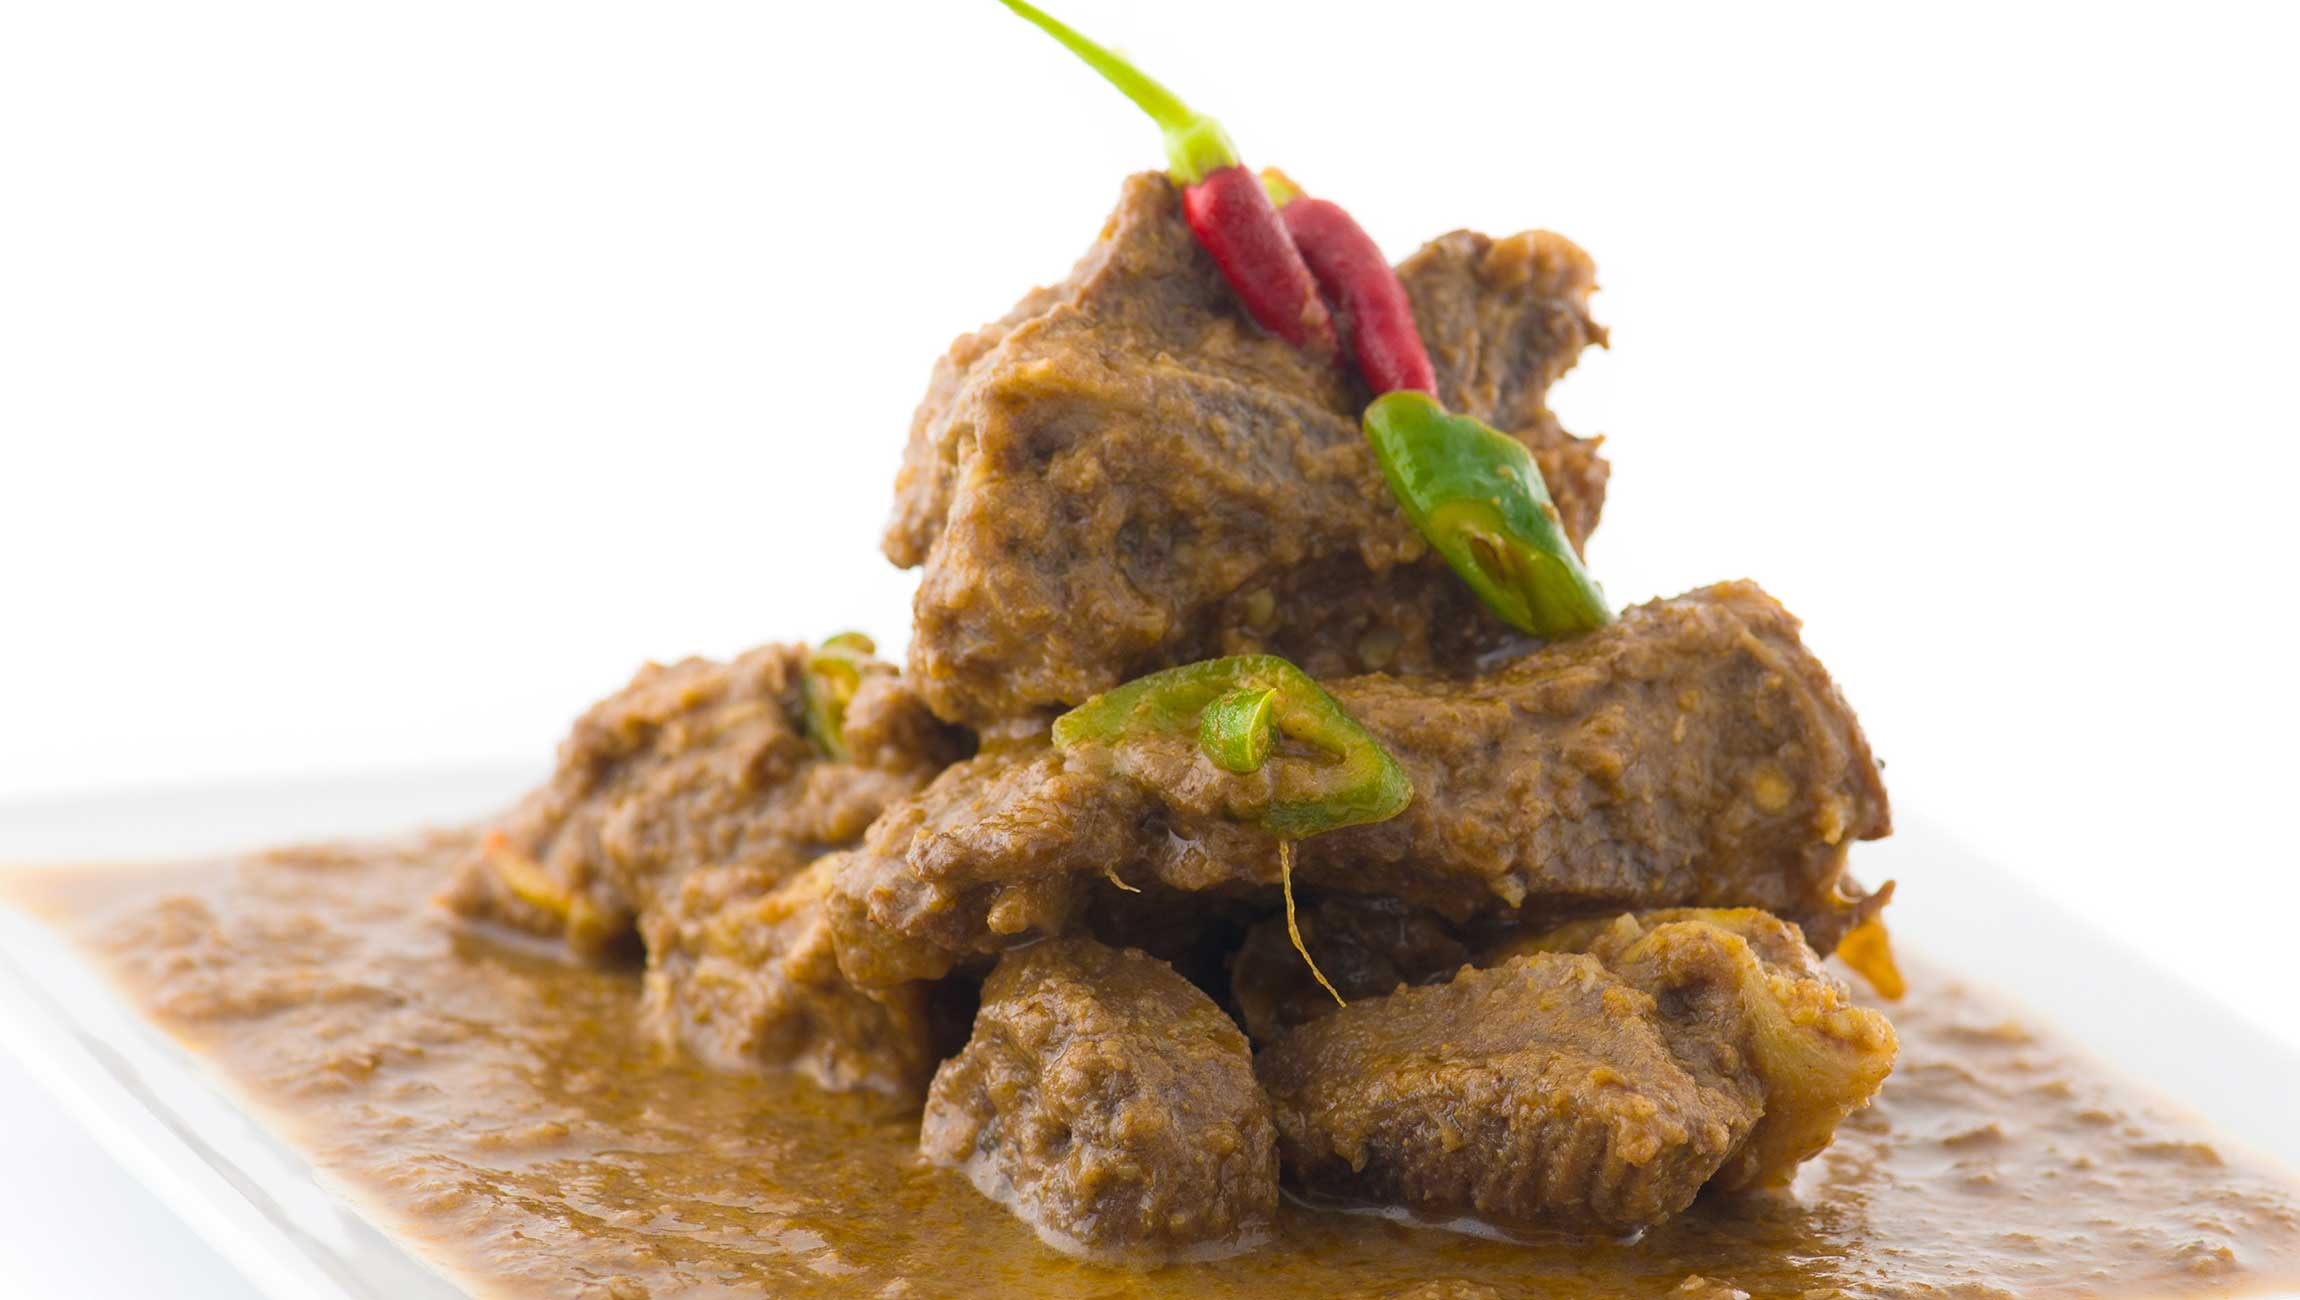 Indian cusisine lamb dish with chilli pepper